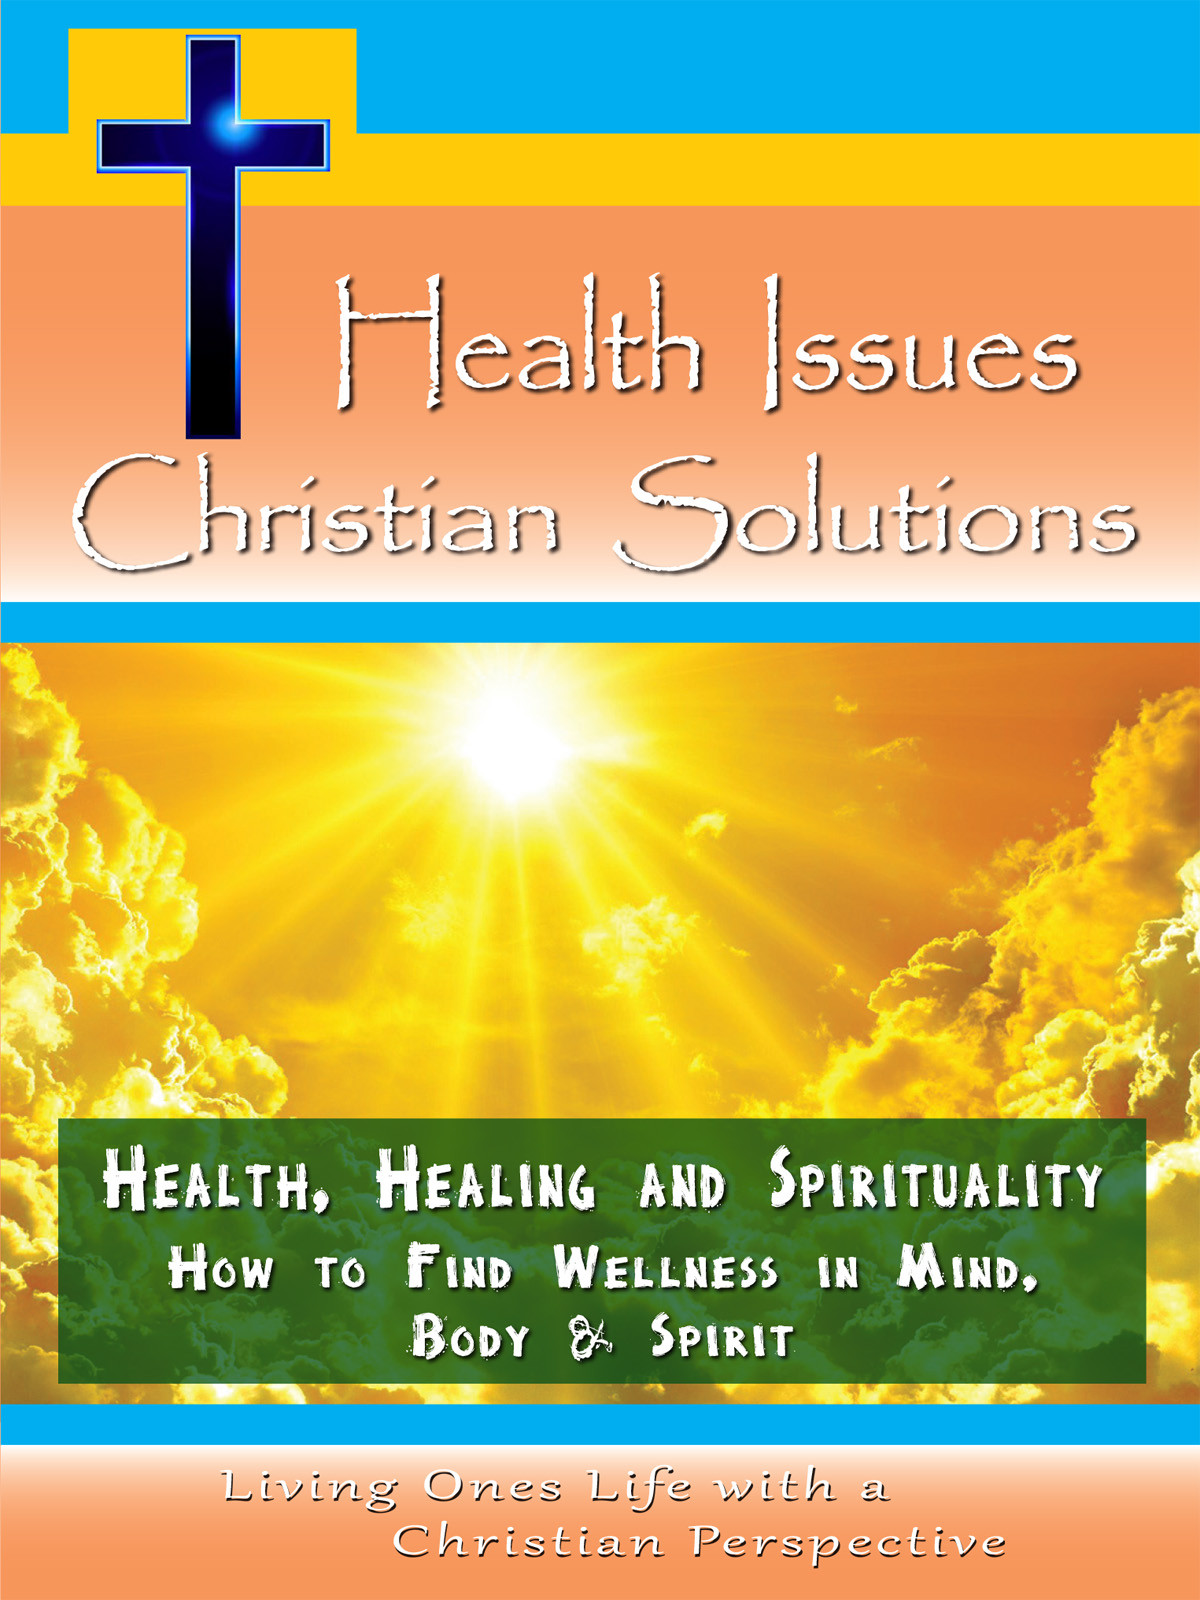 CH10031 - Health, Healing and Spirituality How to Find Wellness in Mind, Body & Spirit